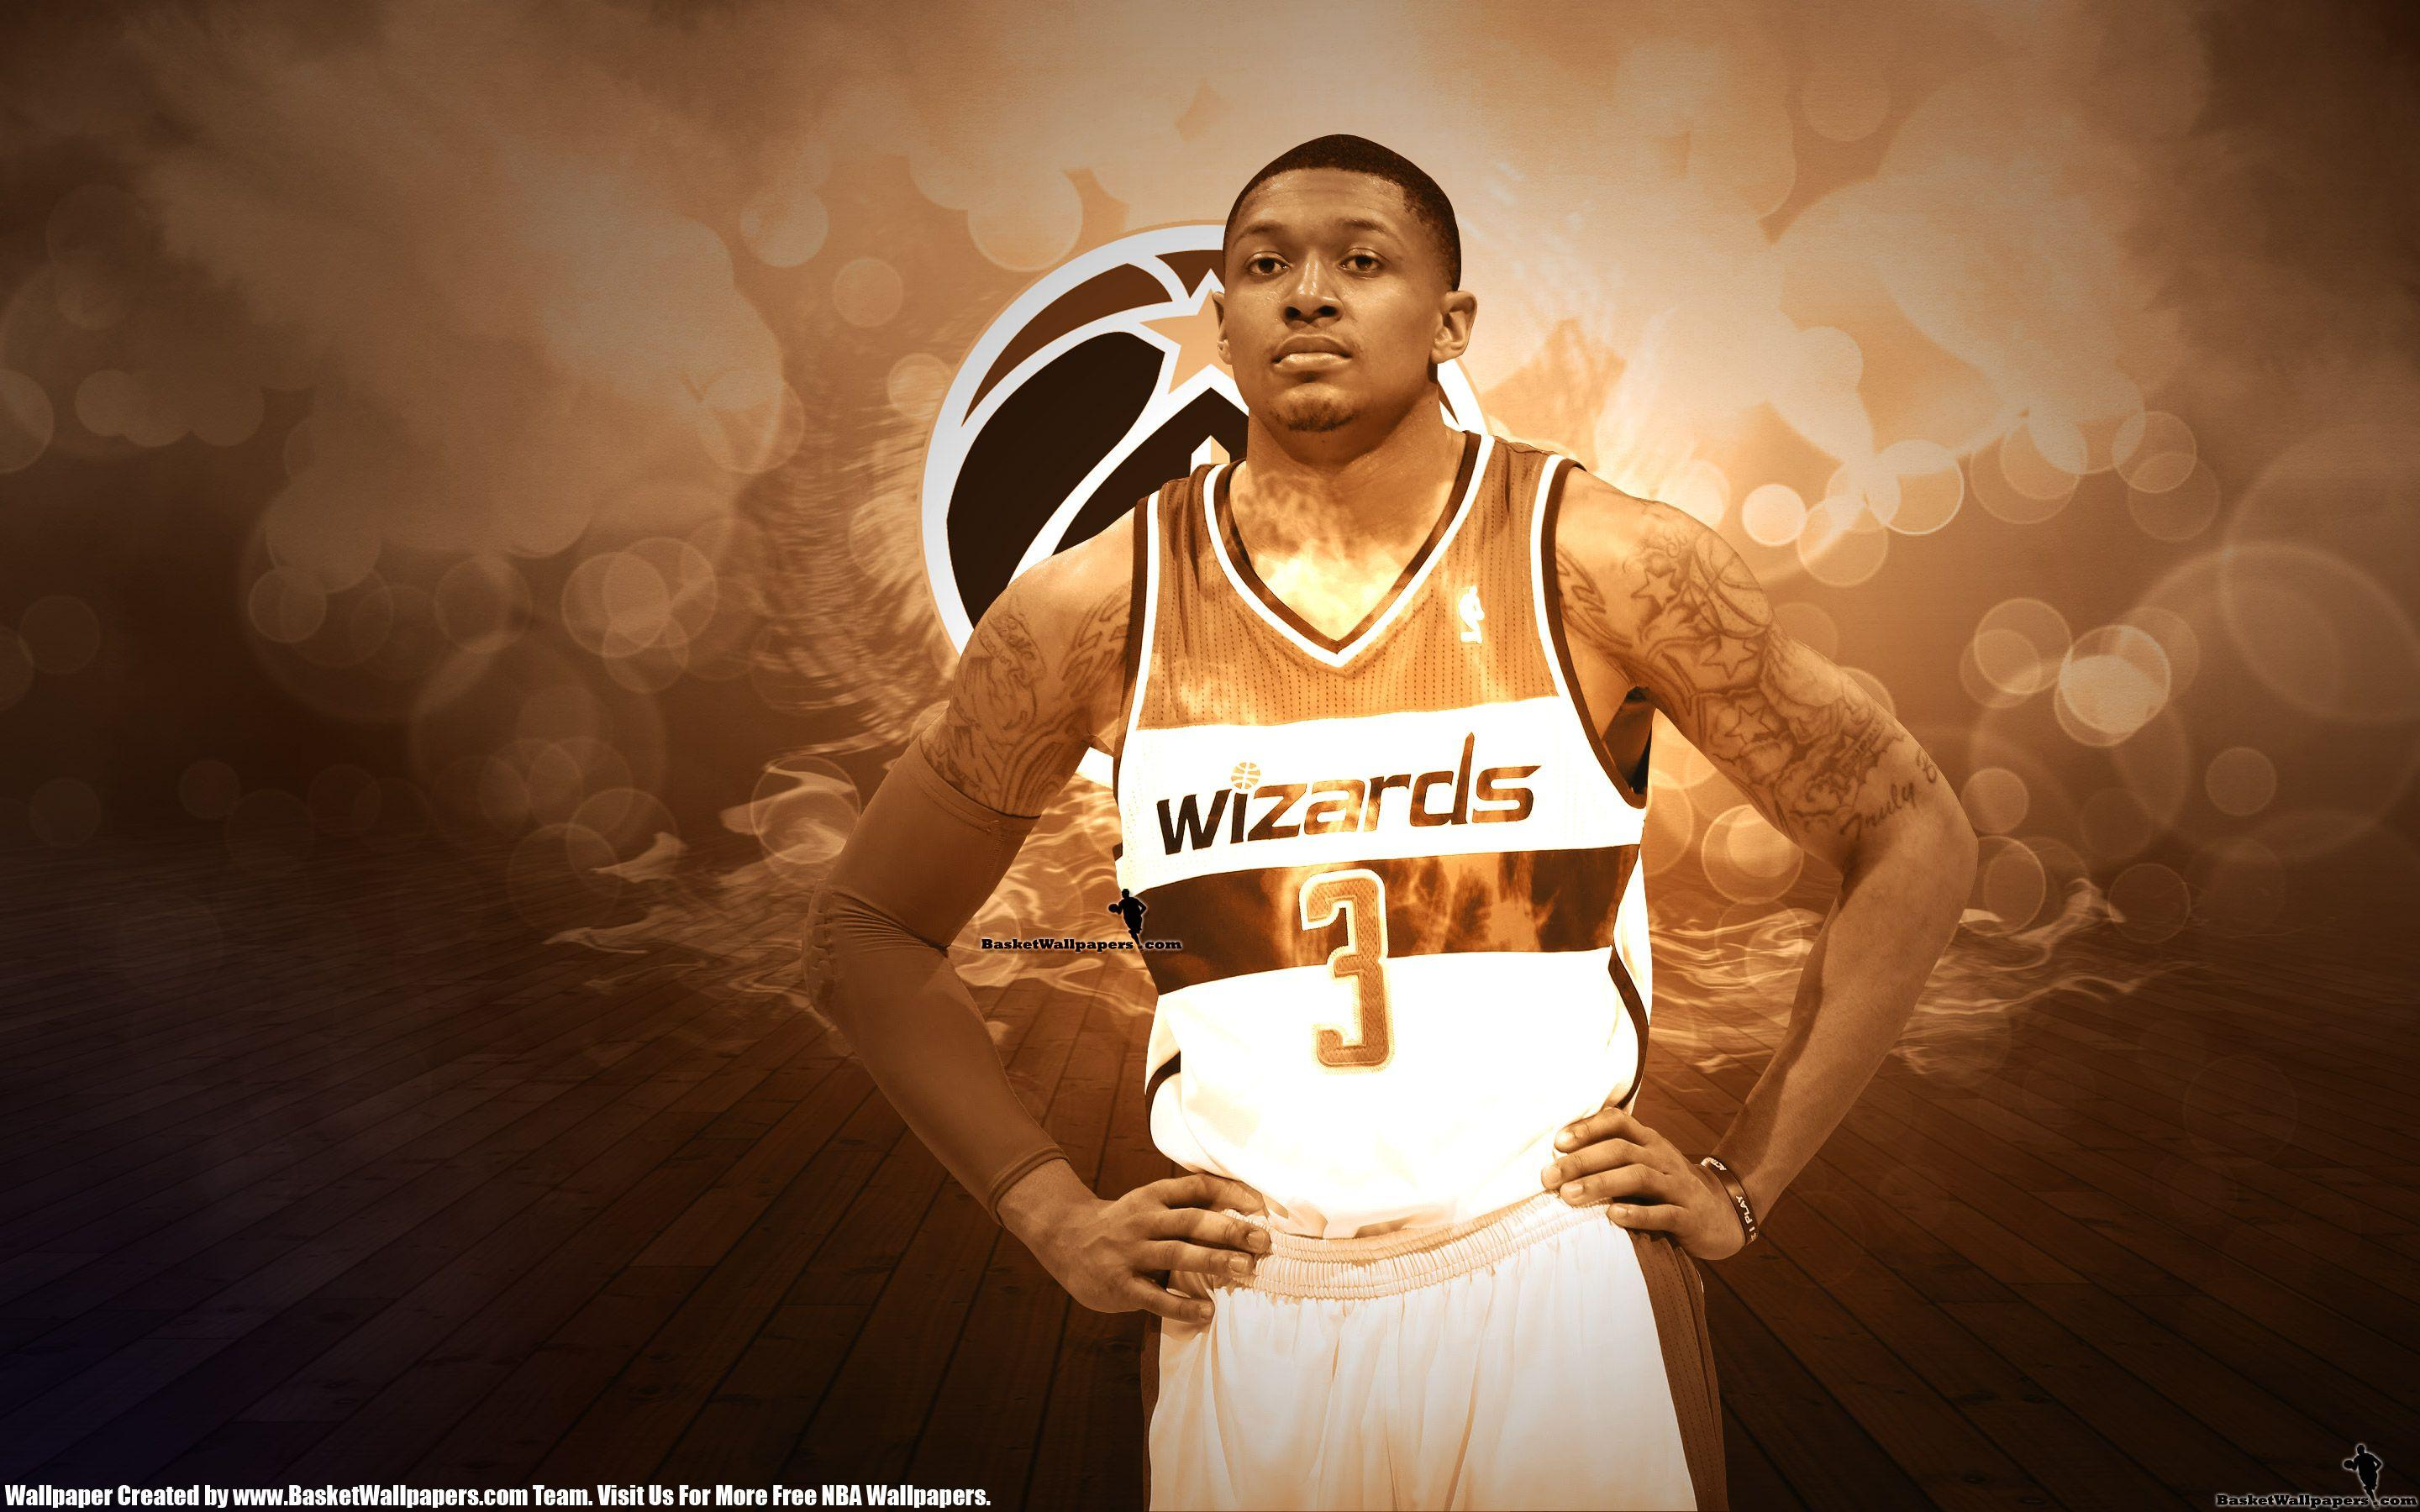 Washington Wizards Wallpapers | Basketball Wallpapers at ...